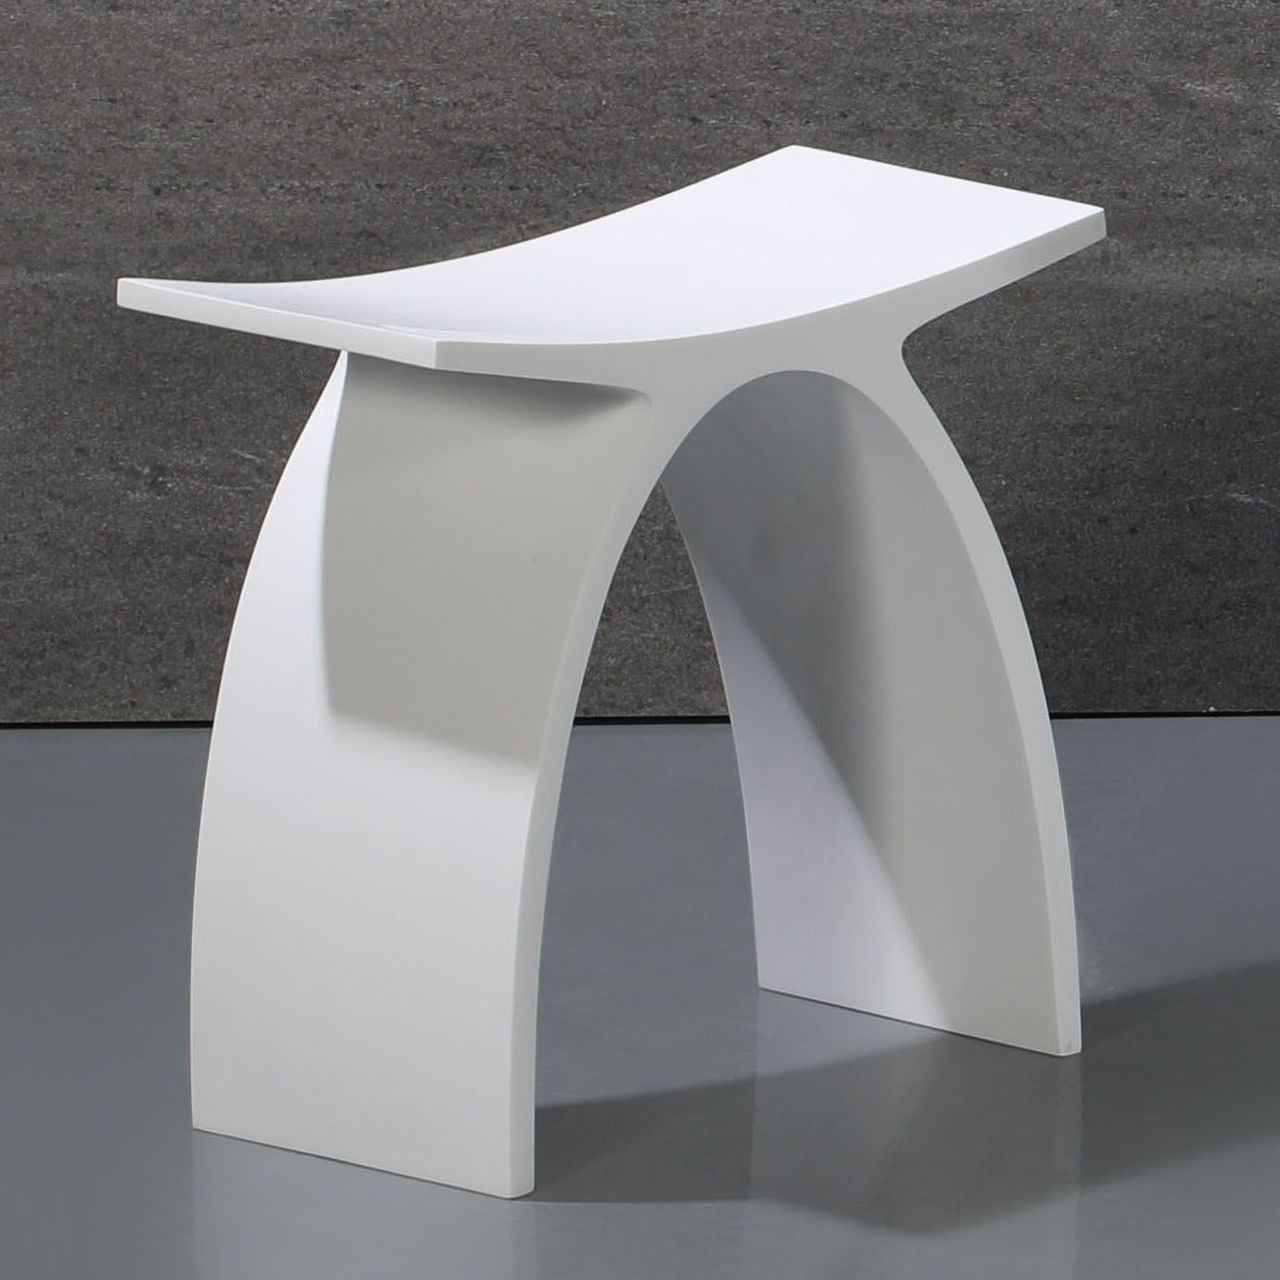 ALFI Arched White Matte Solid Surface Resin Bathroom / Shower Stool